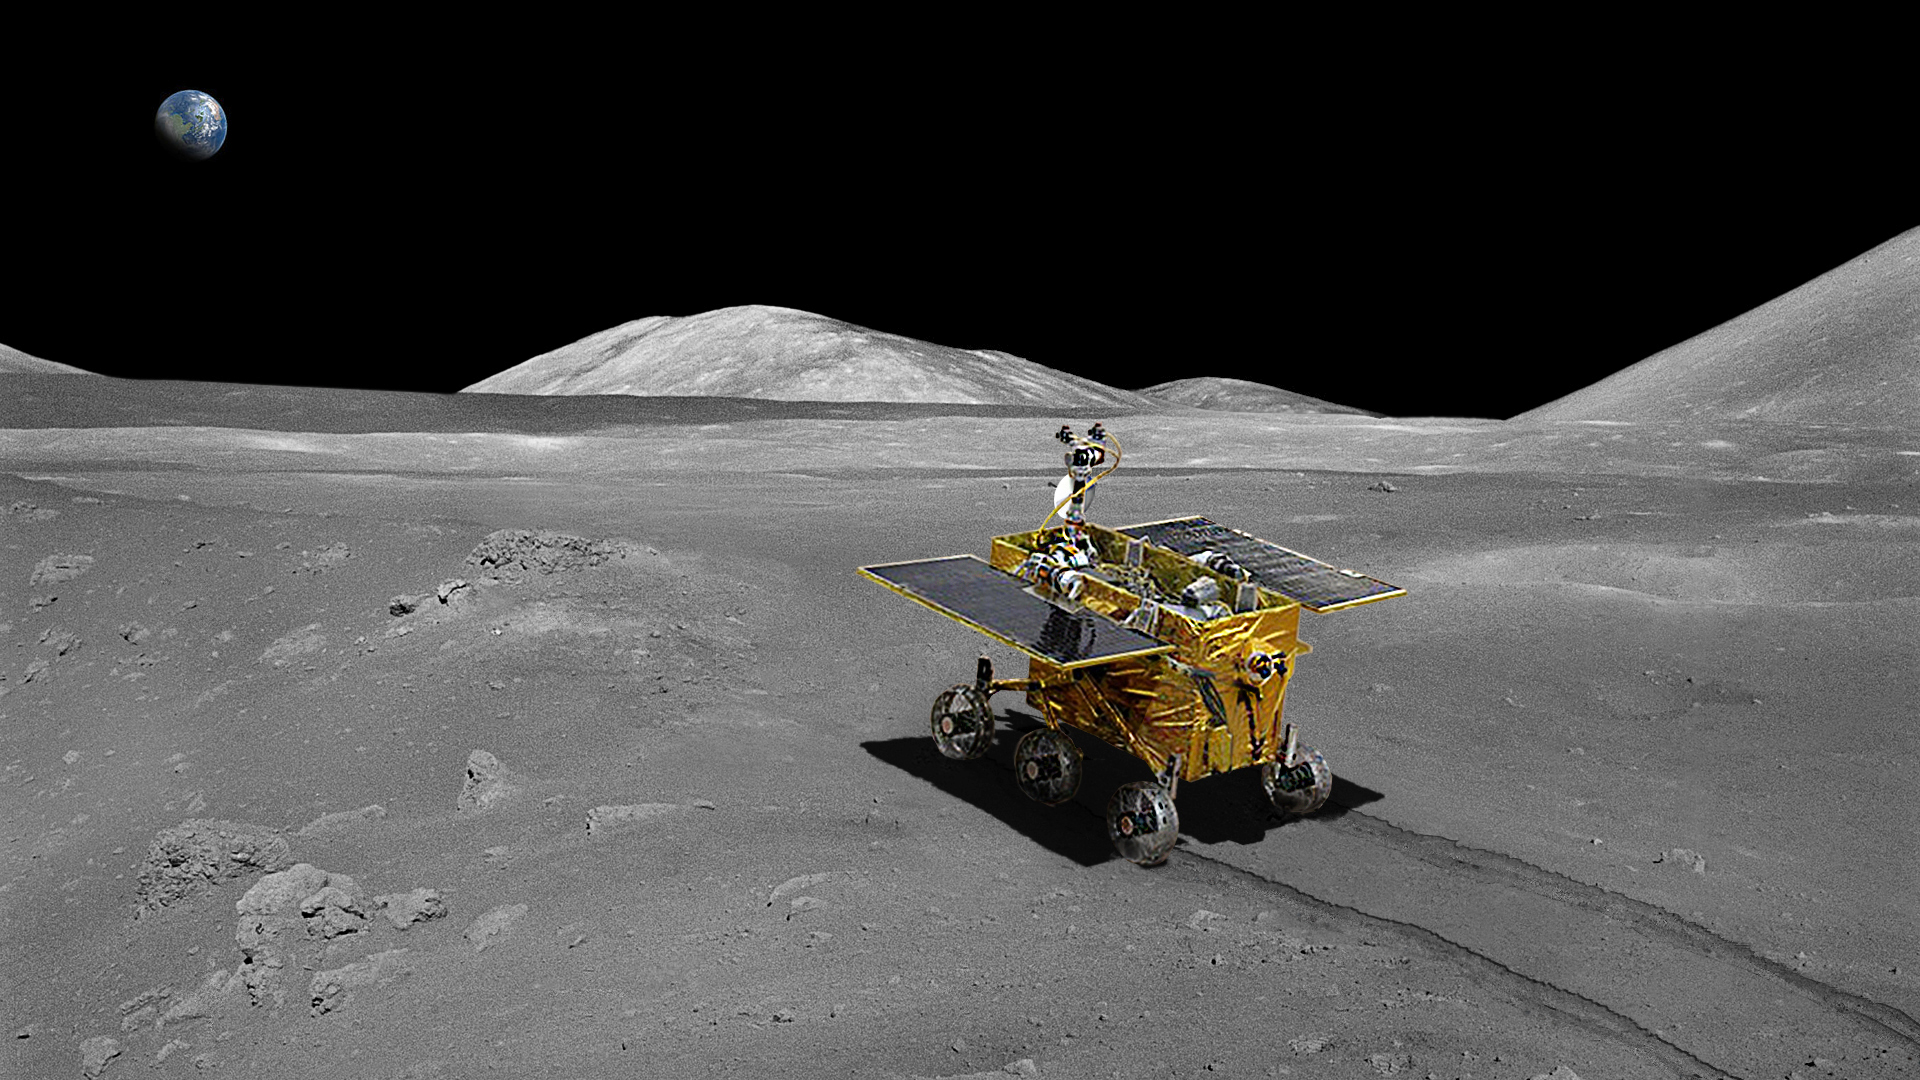 moon rover images - photo #19